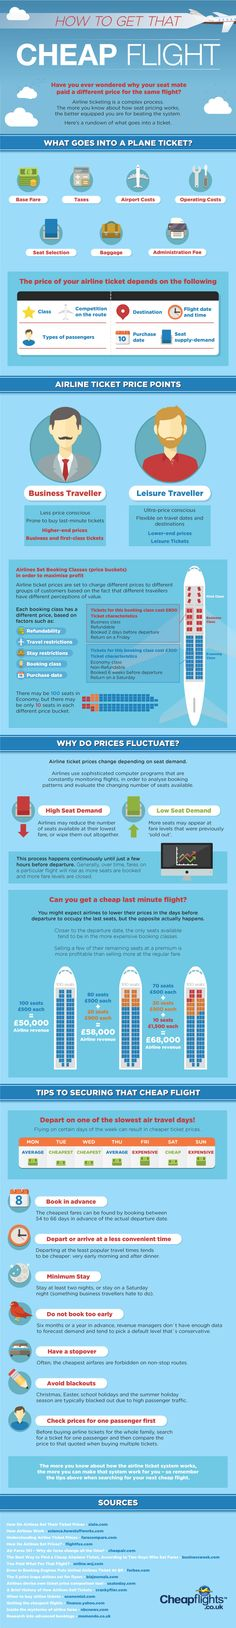 How to Get that Cheap Flight #infographic